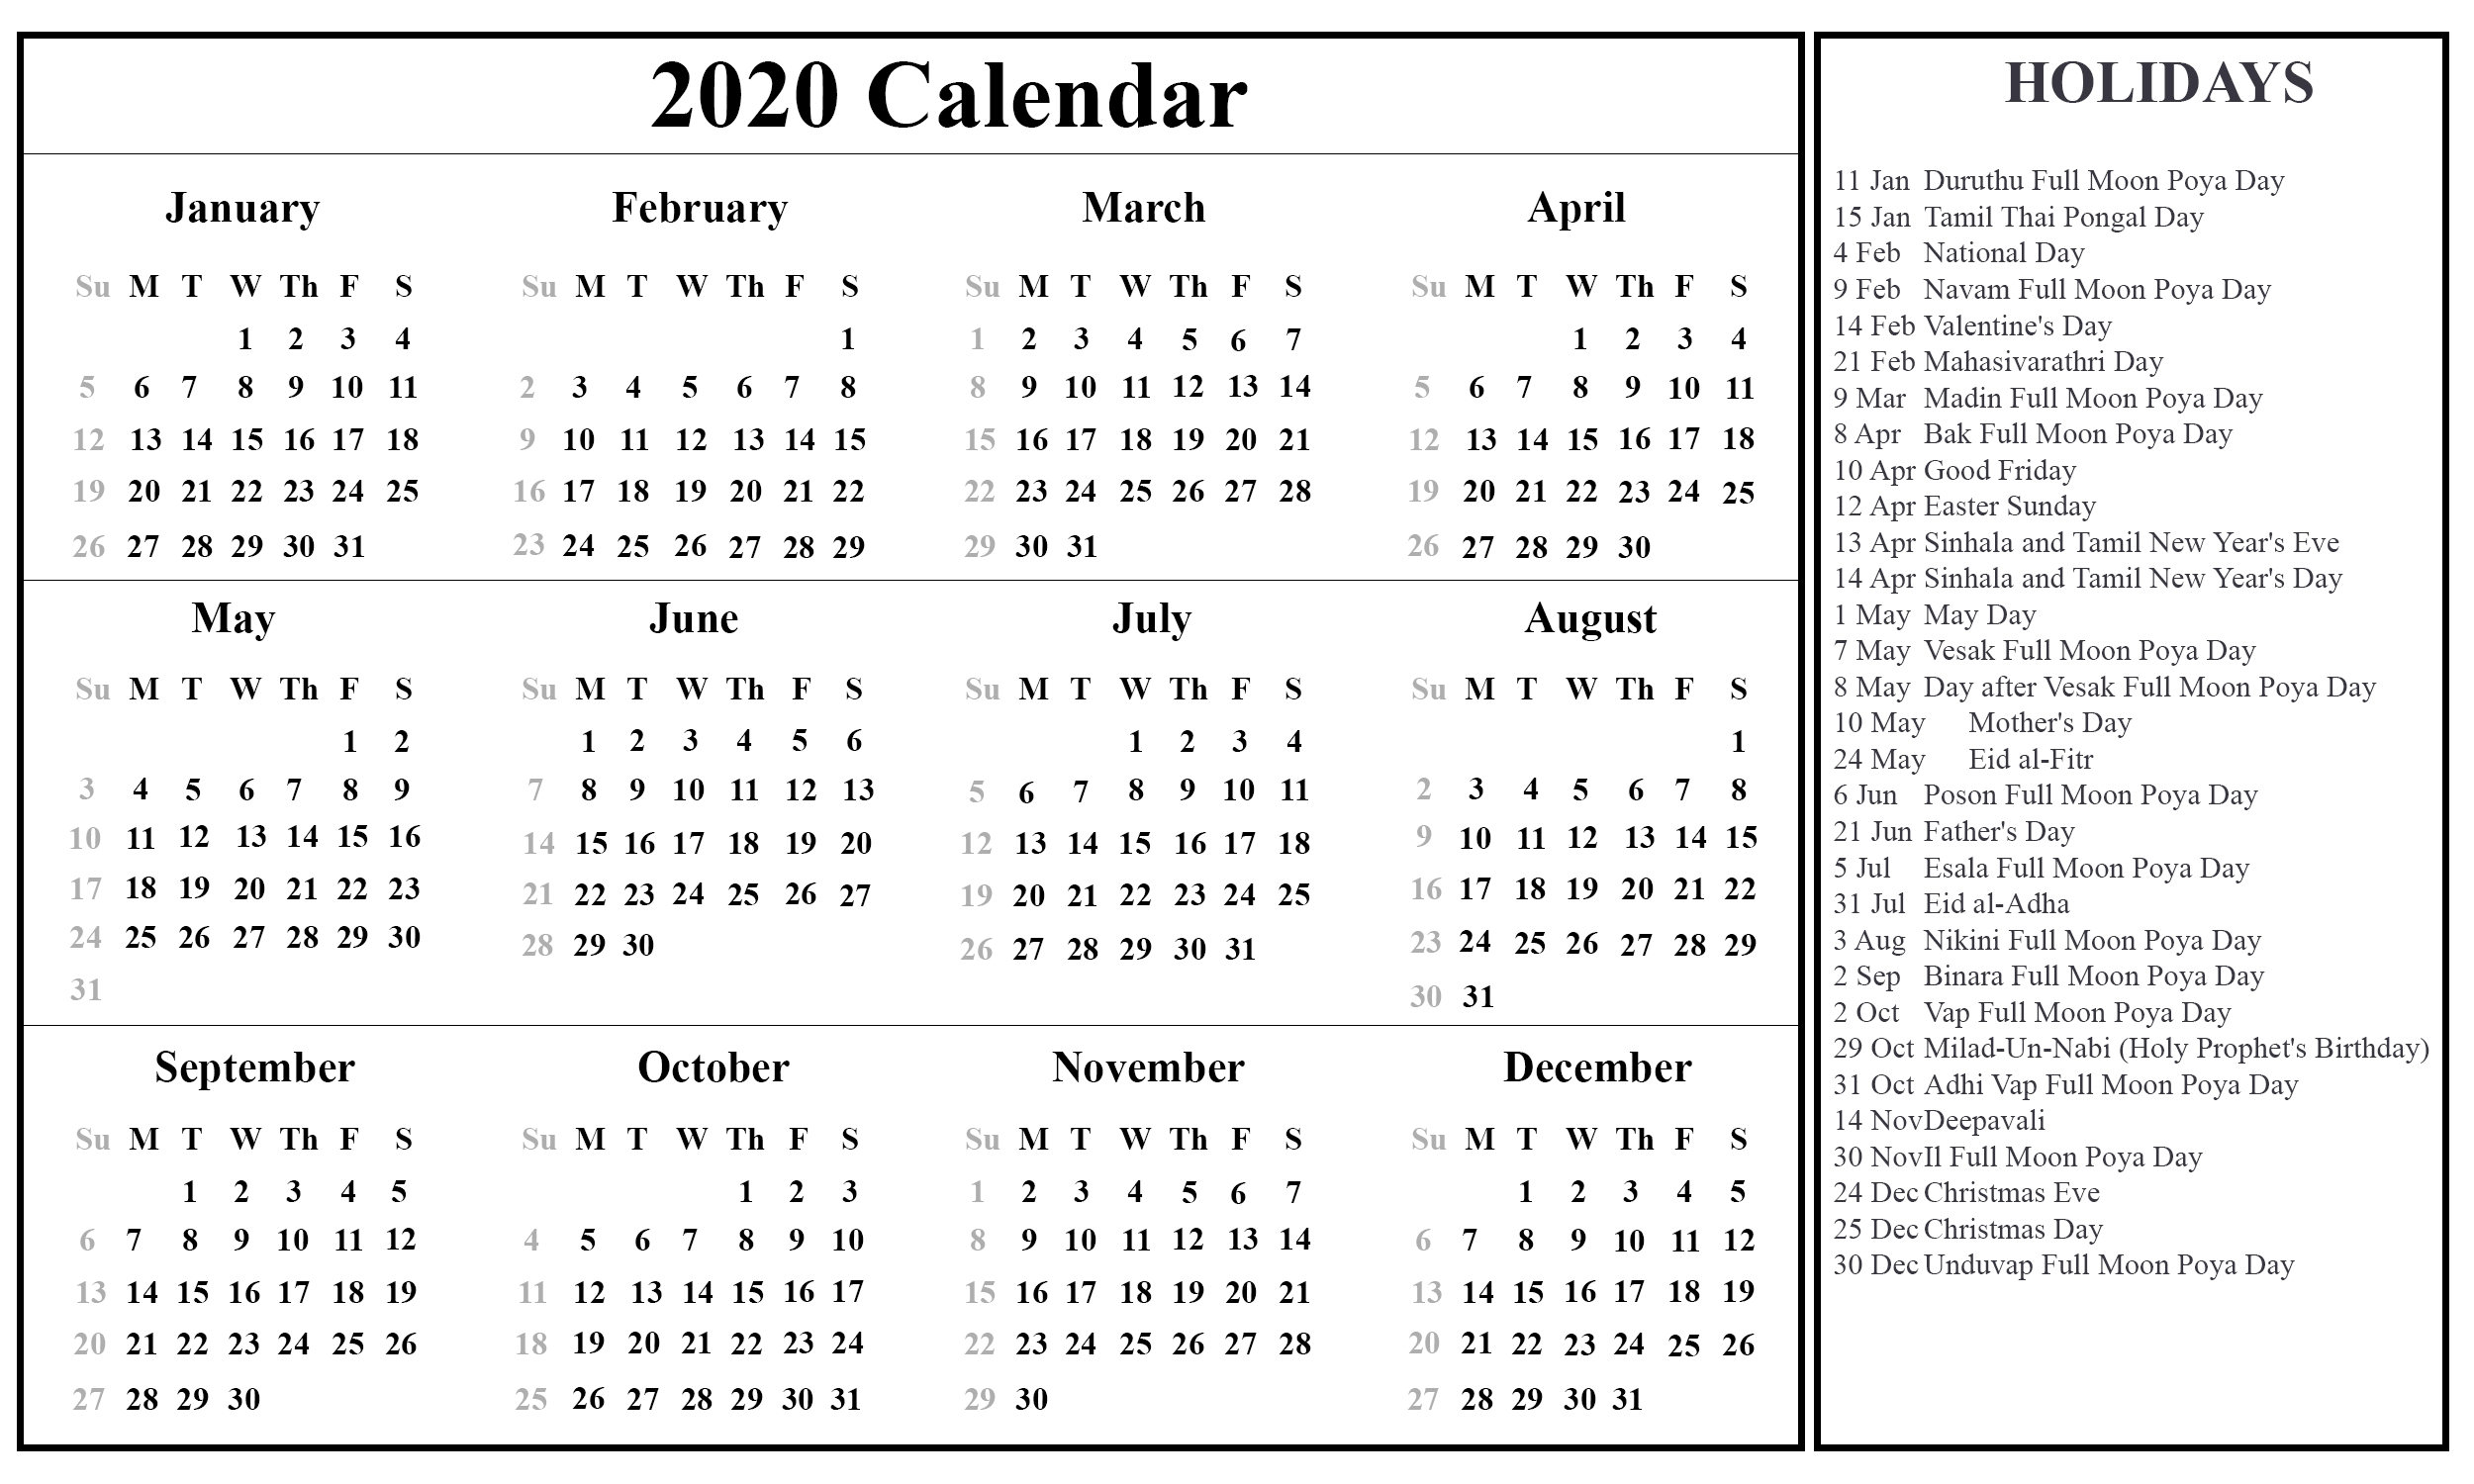 Free Printable Sri Lanka Calendar 2020 With Holidays In Pdf-January 2020 Hijri Calendar